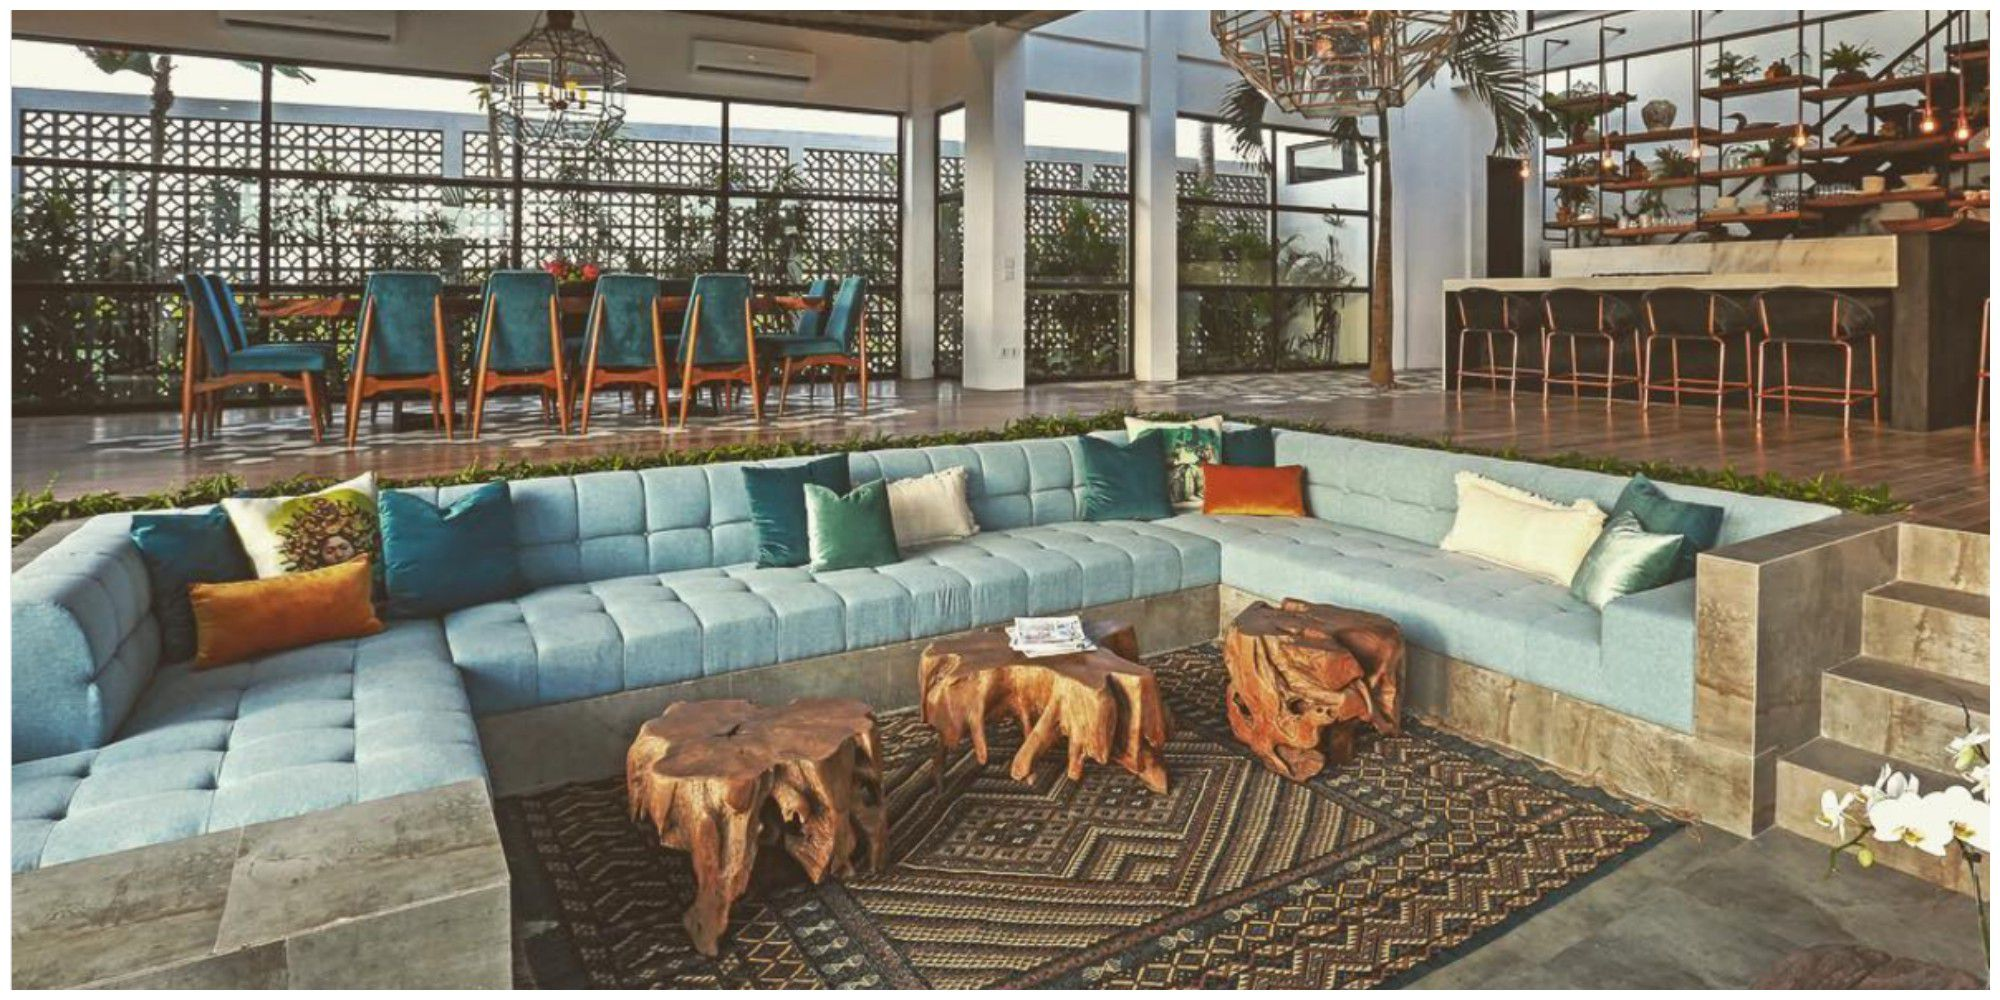 Is The Midcentury Conversation Pit Ready For A Revival